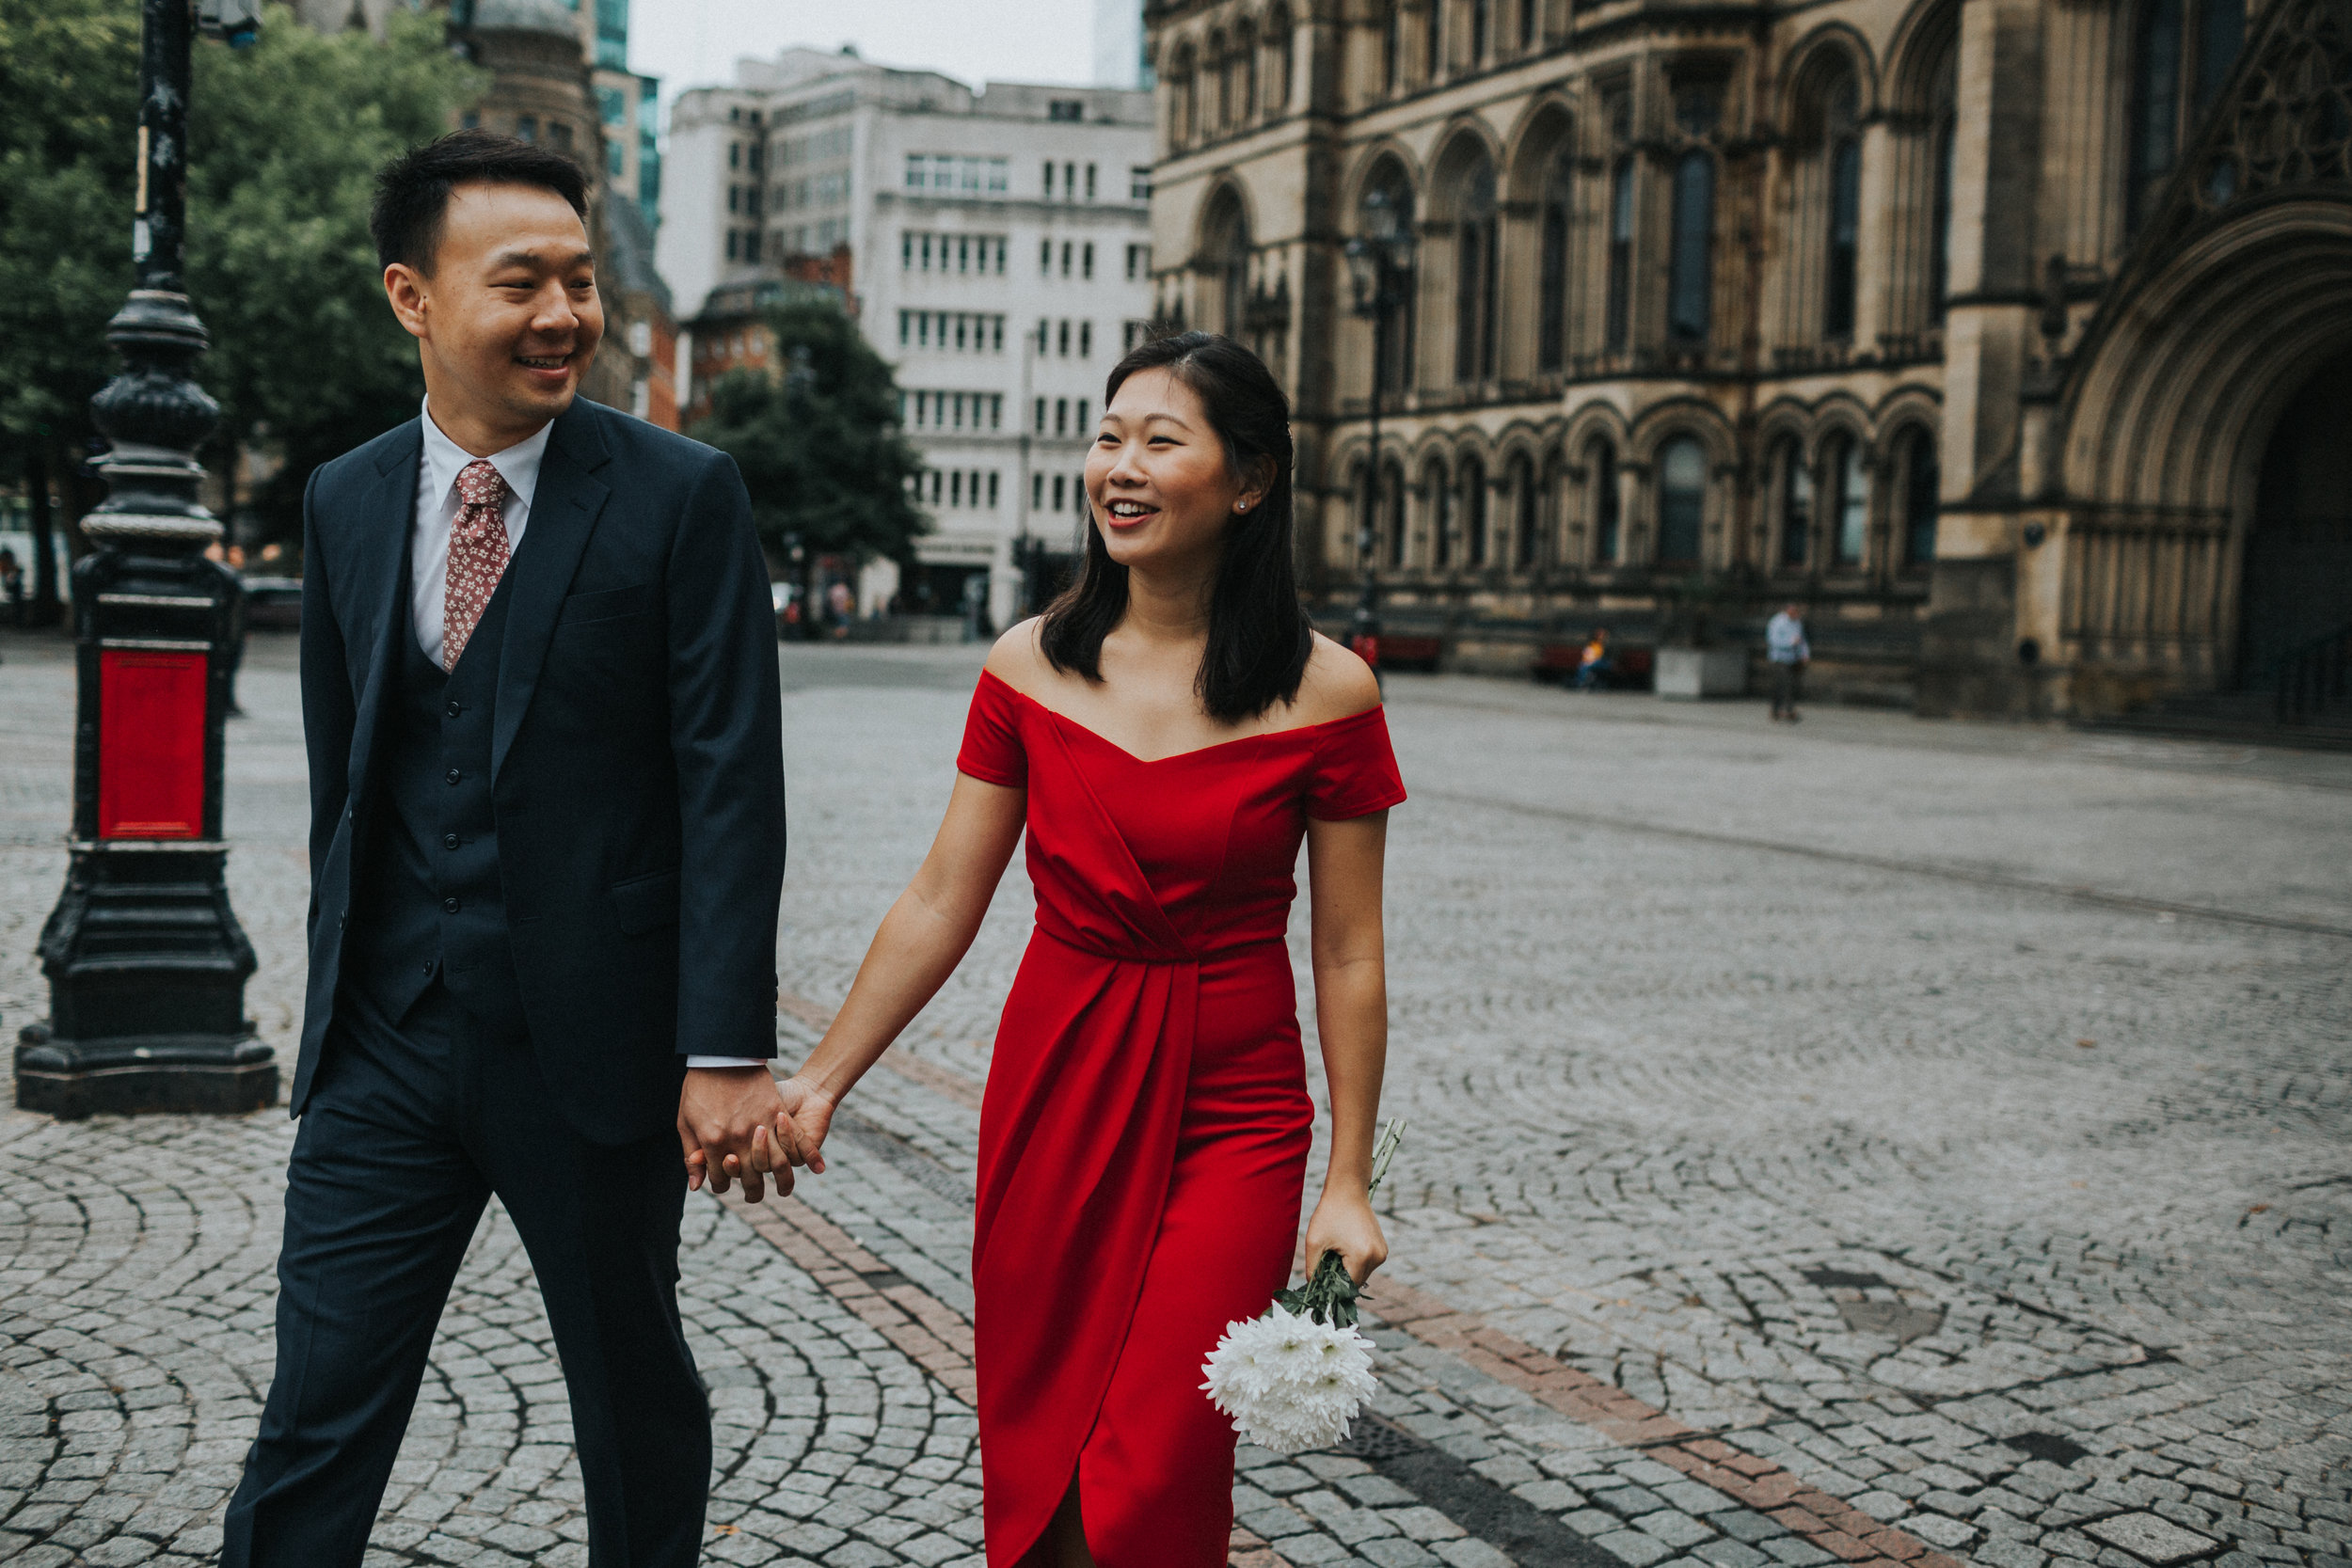 Couple smiling and walking together.